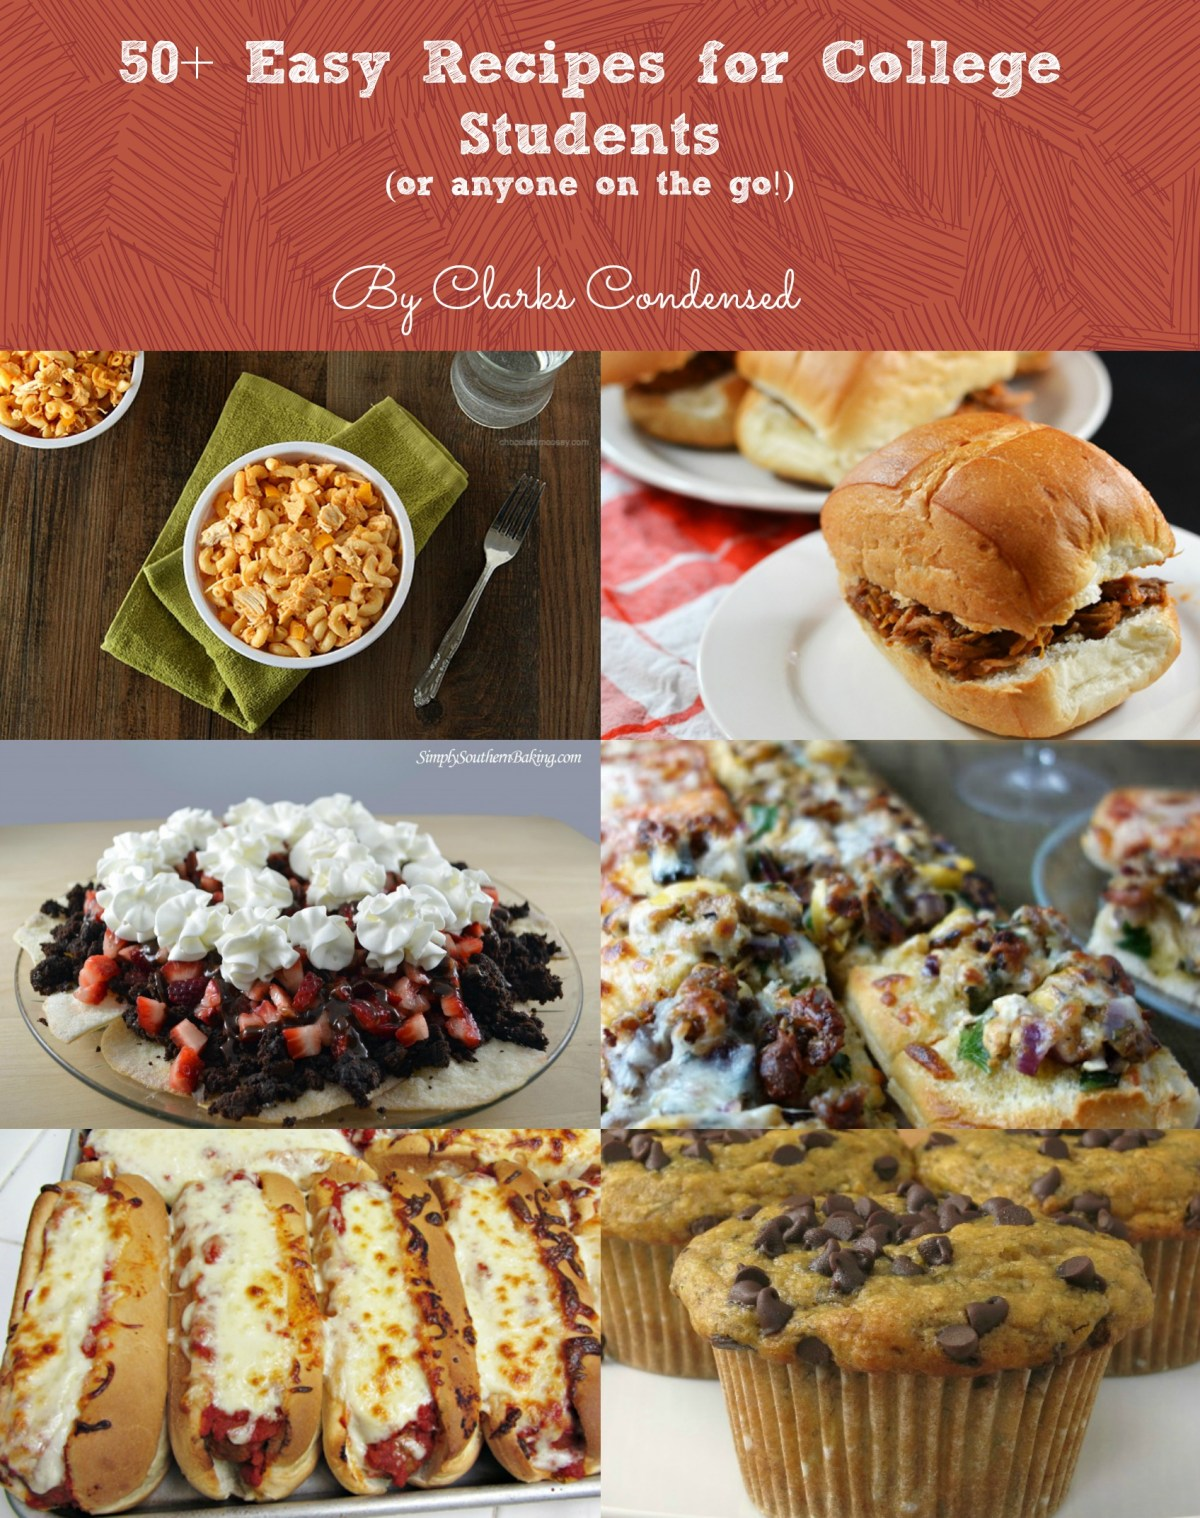 Easy-Recipes-For-College-Students